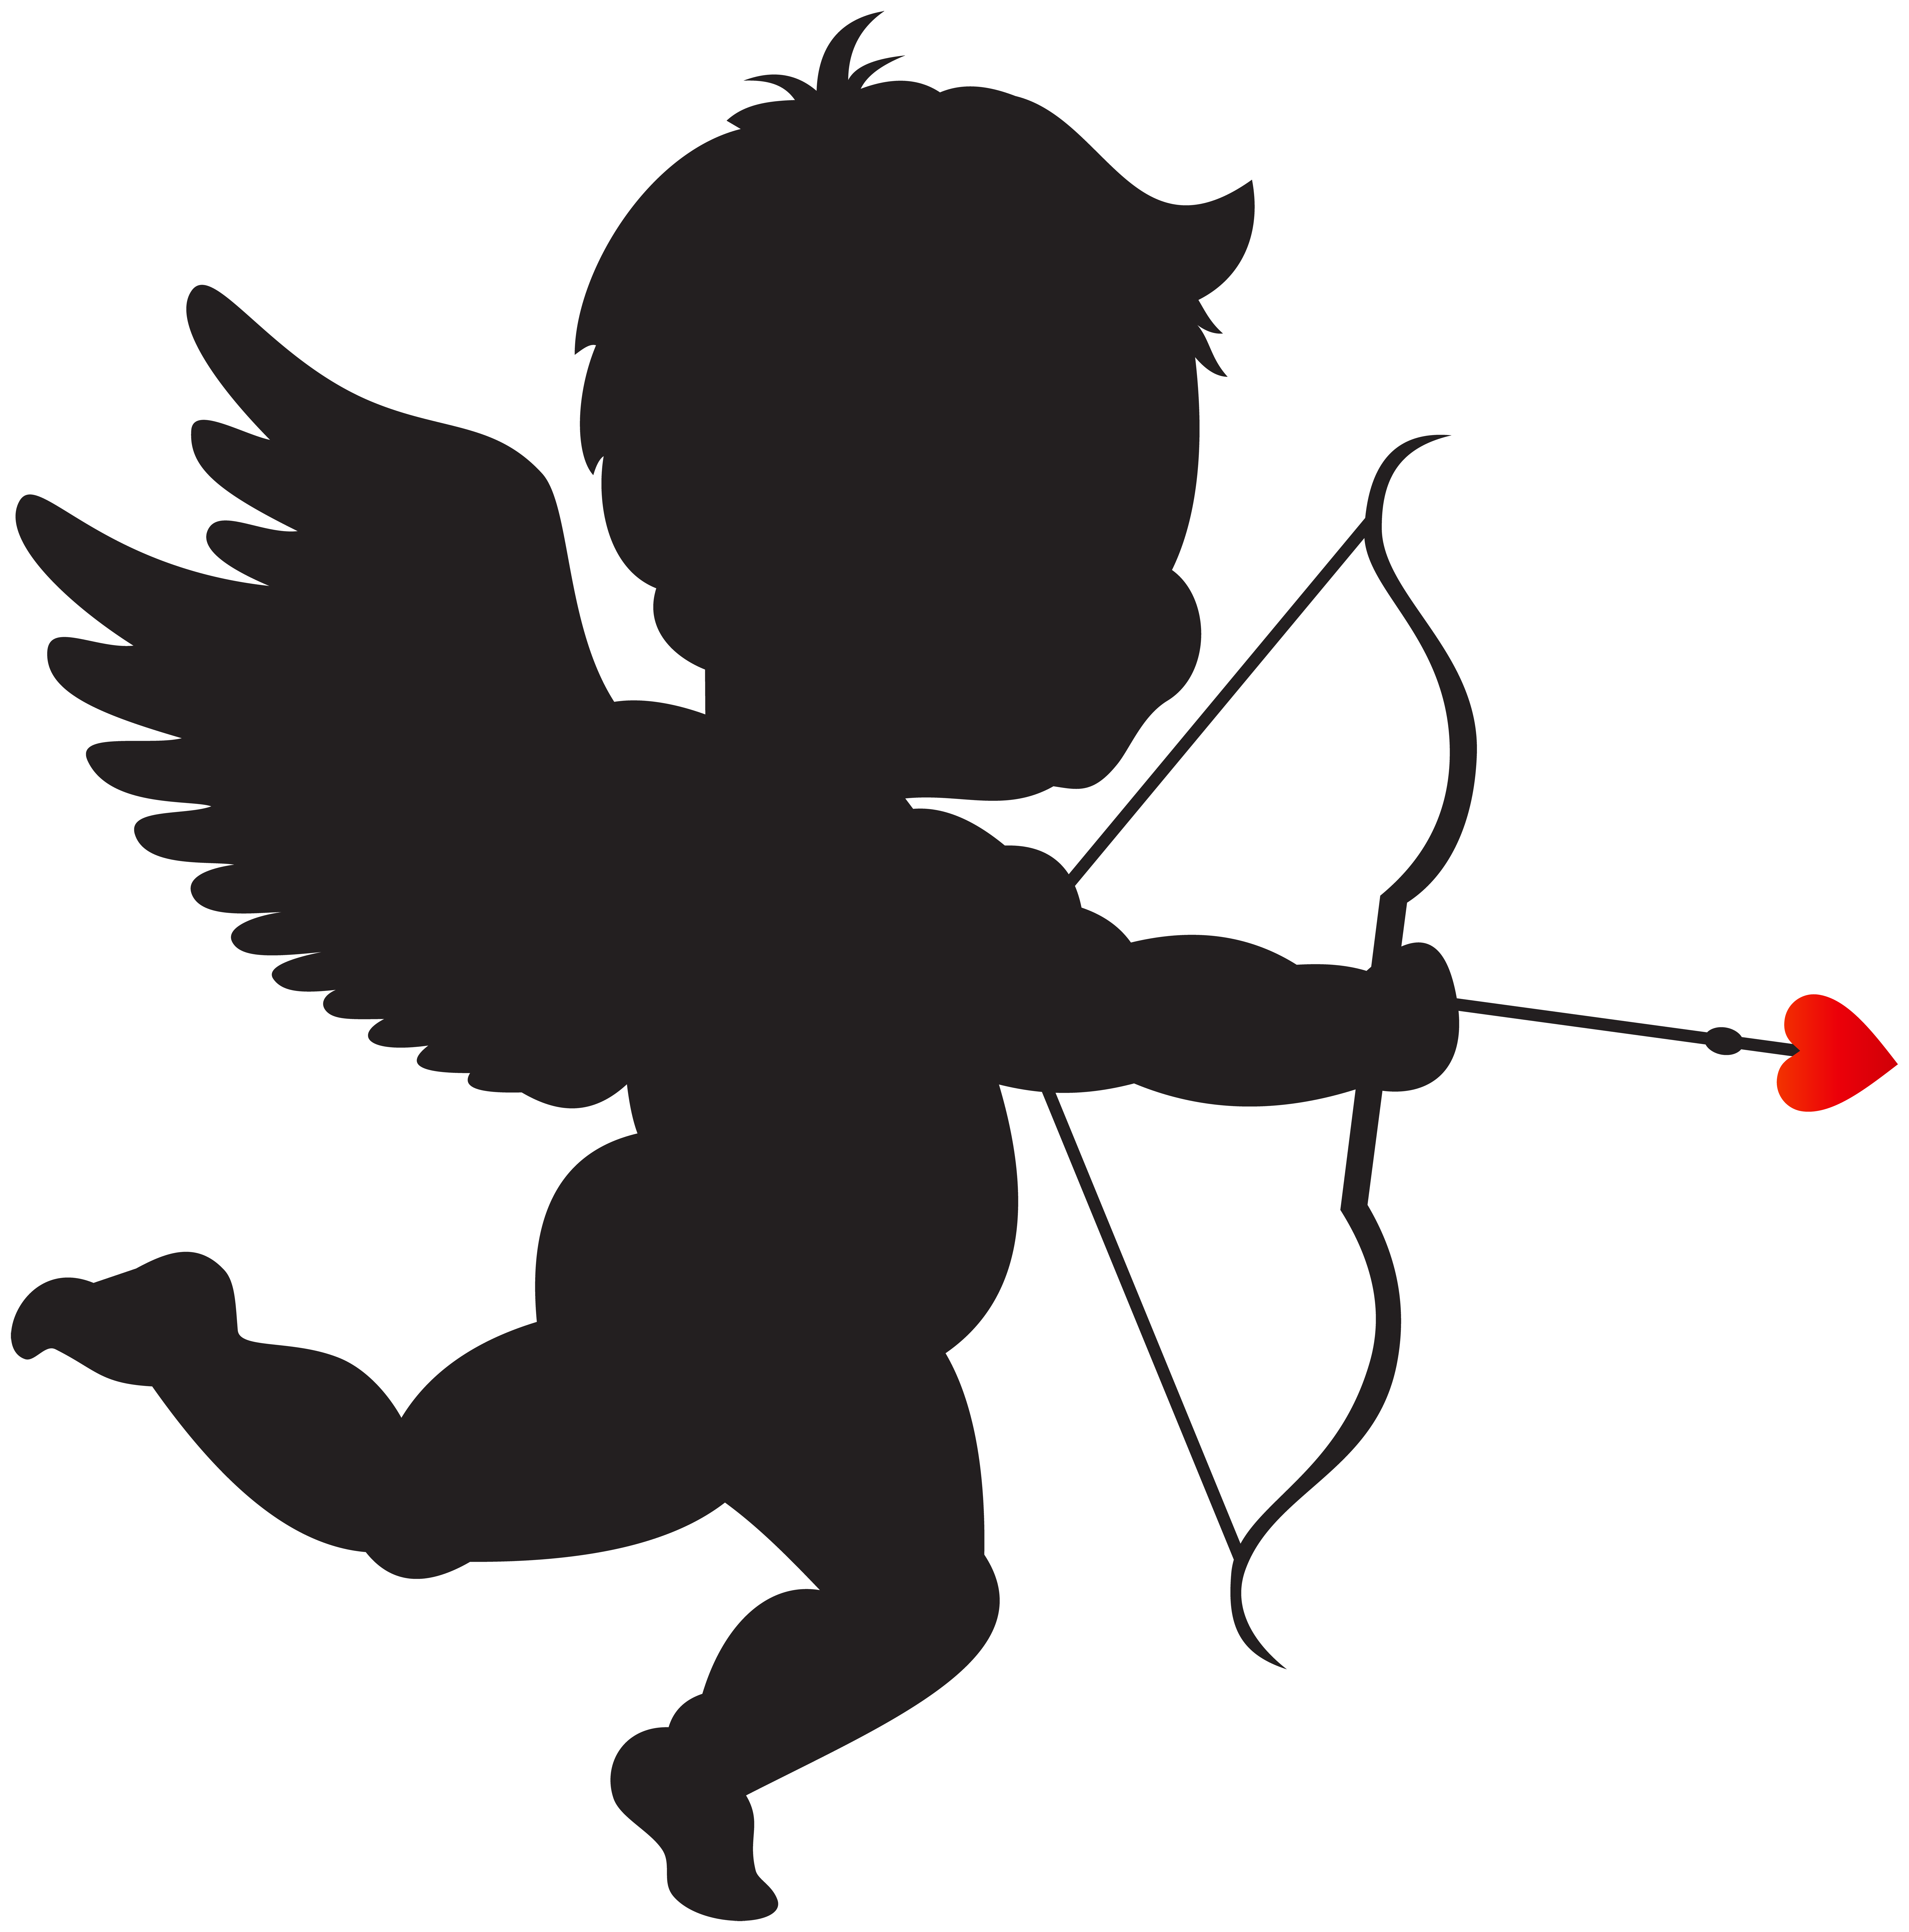 With bow silhouette png. Cupid clipart graphic freeuse download